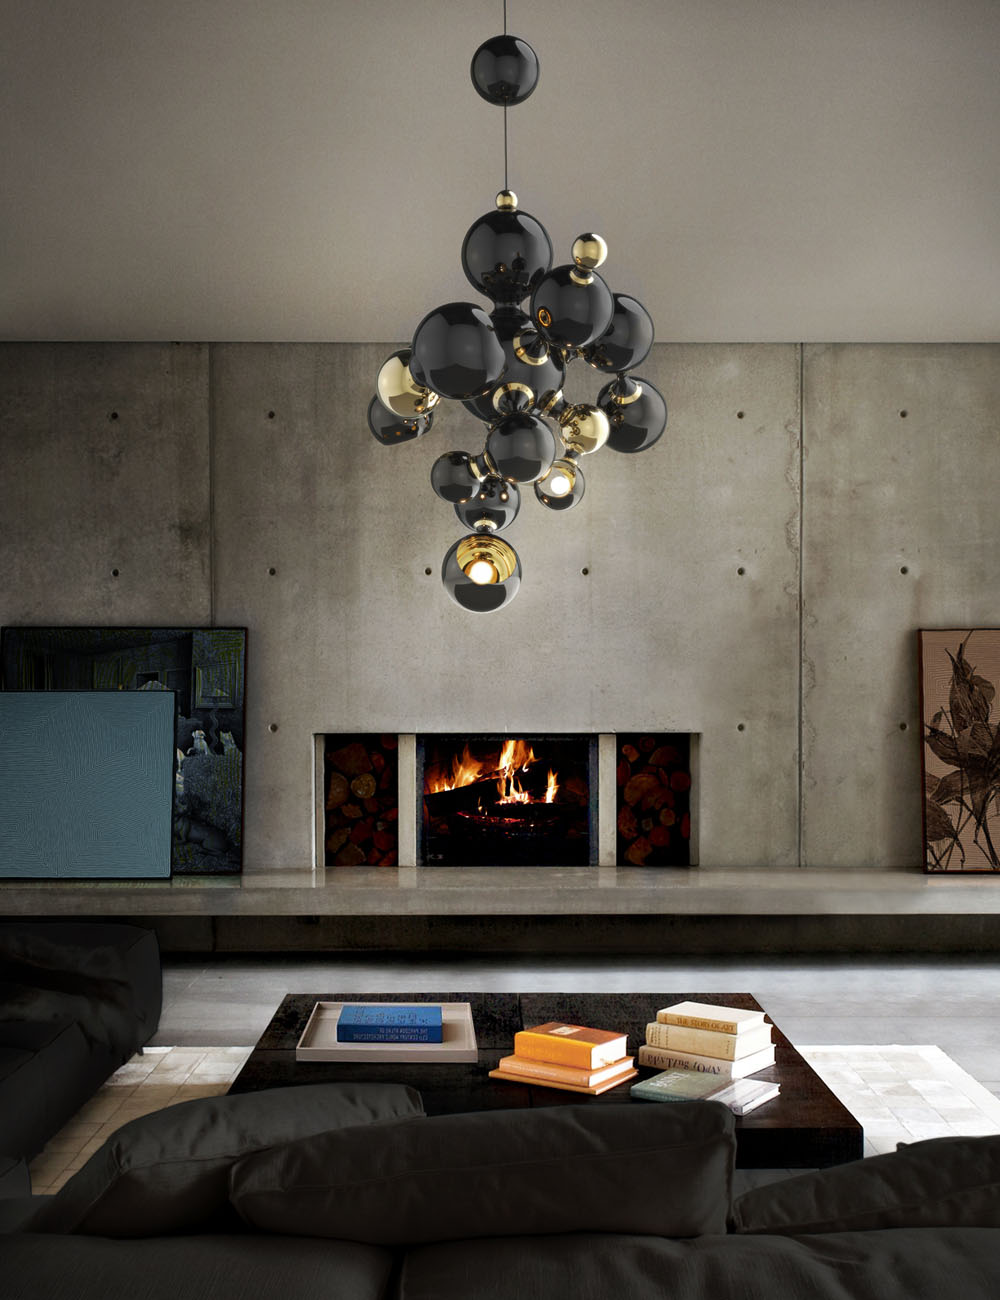 Private Luxury Home in Italy Filled with Contemporary Lighting 11  Private Luxury Home in Italy Filled with Contemporary Lighting Private Luxury Home in Italy Filled with Contemporary Lighting 11